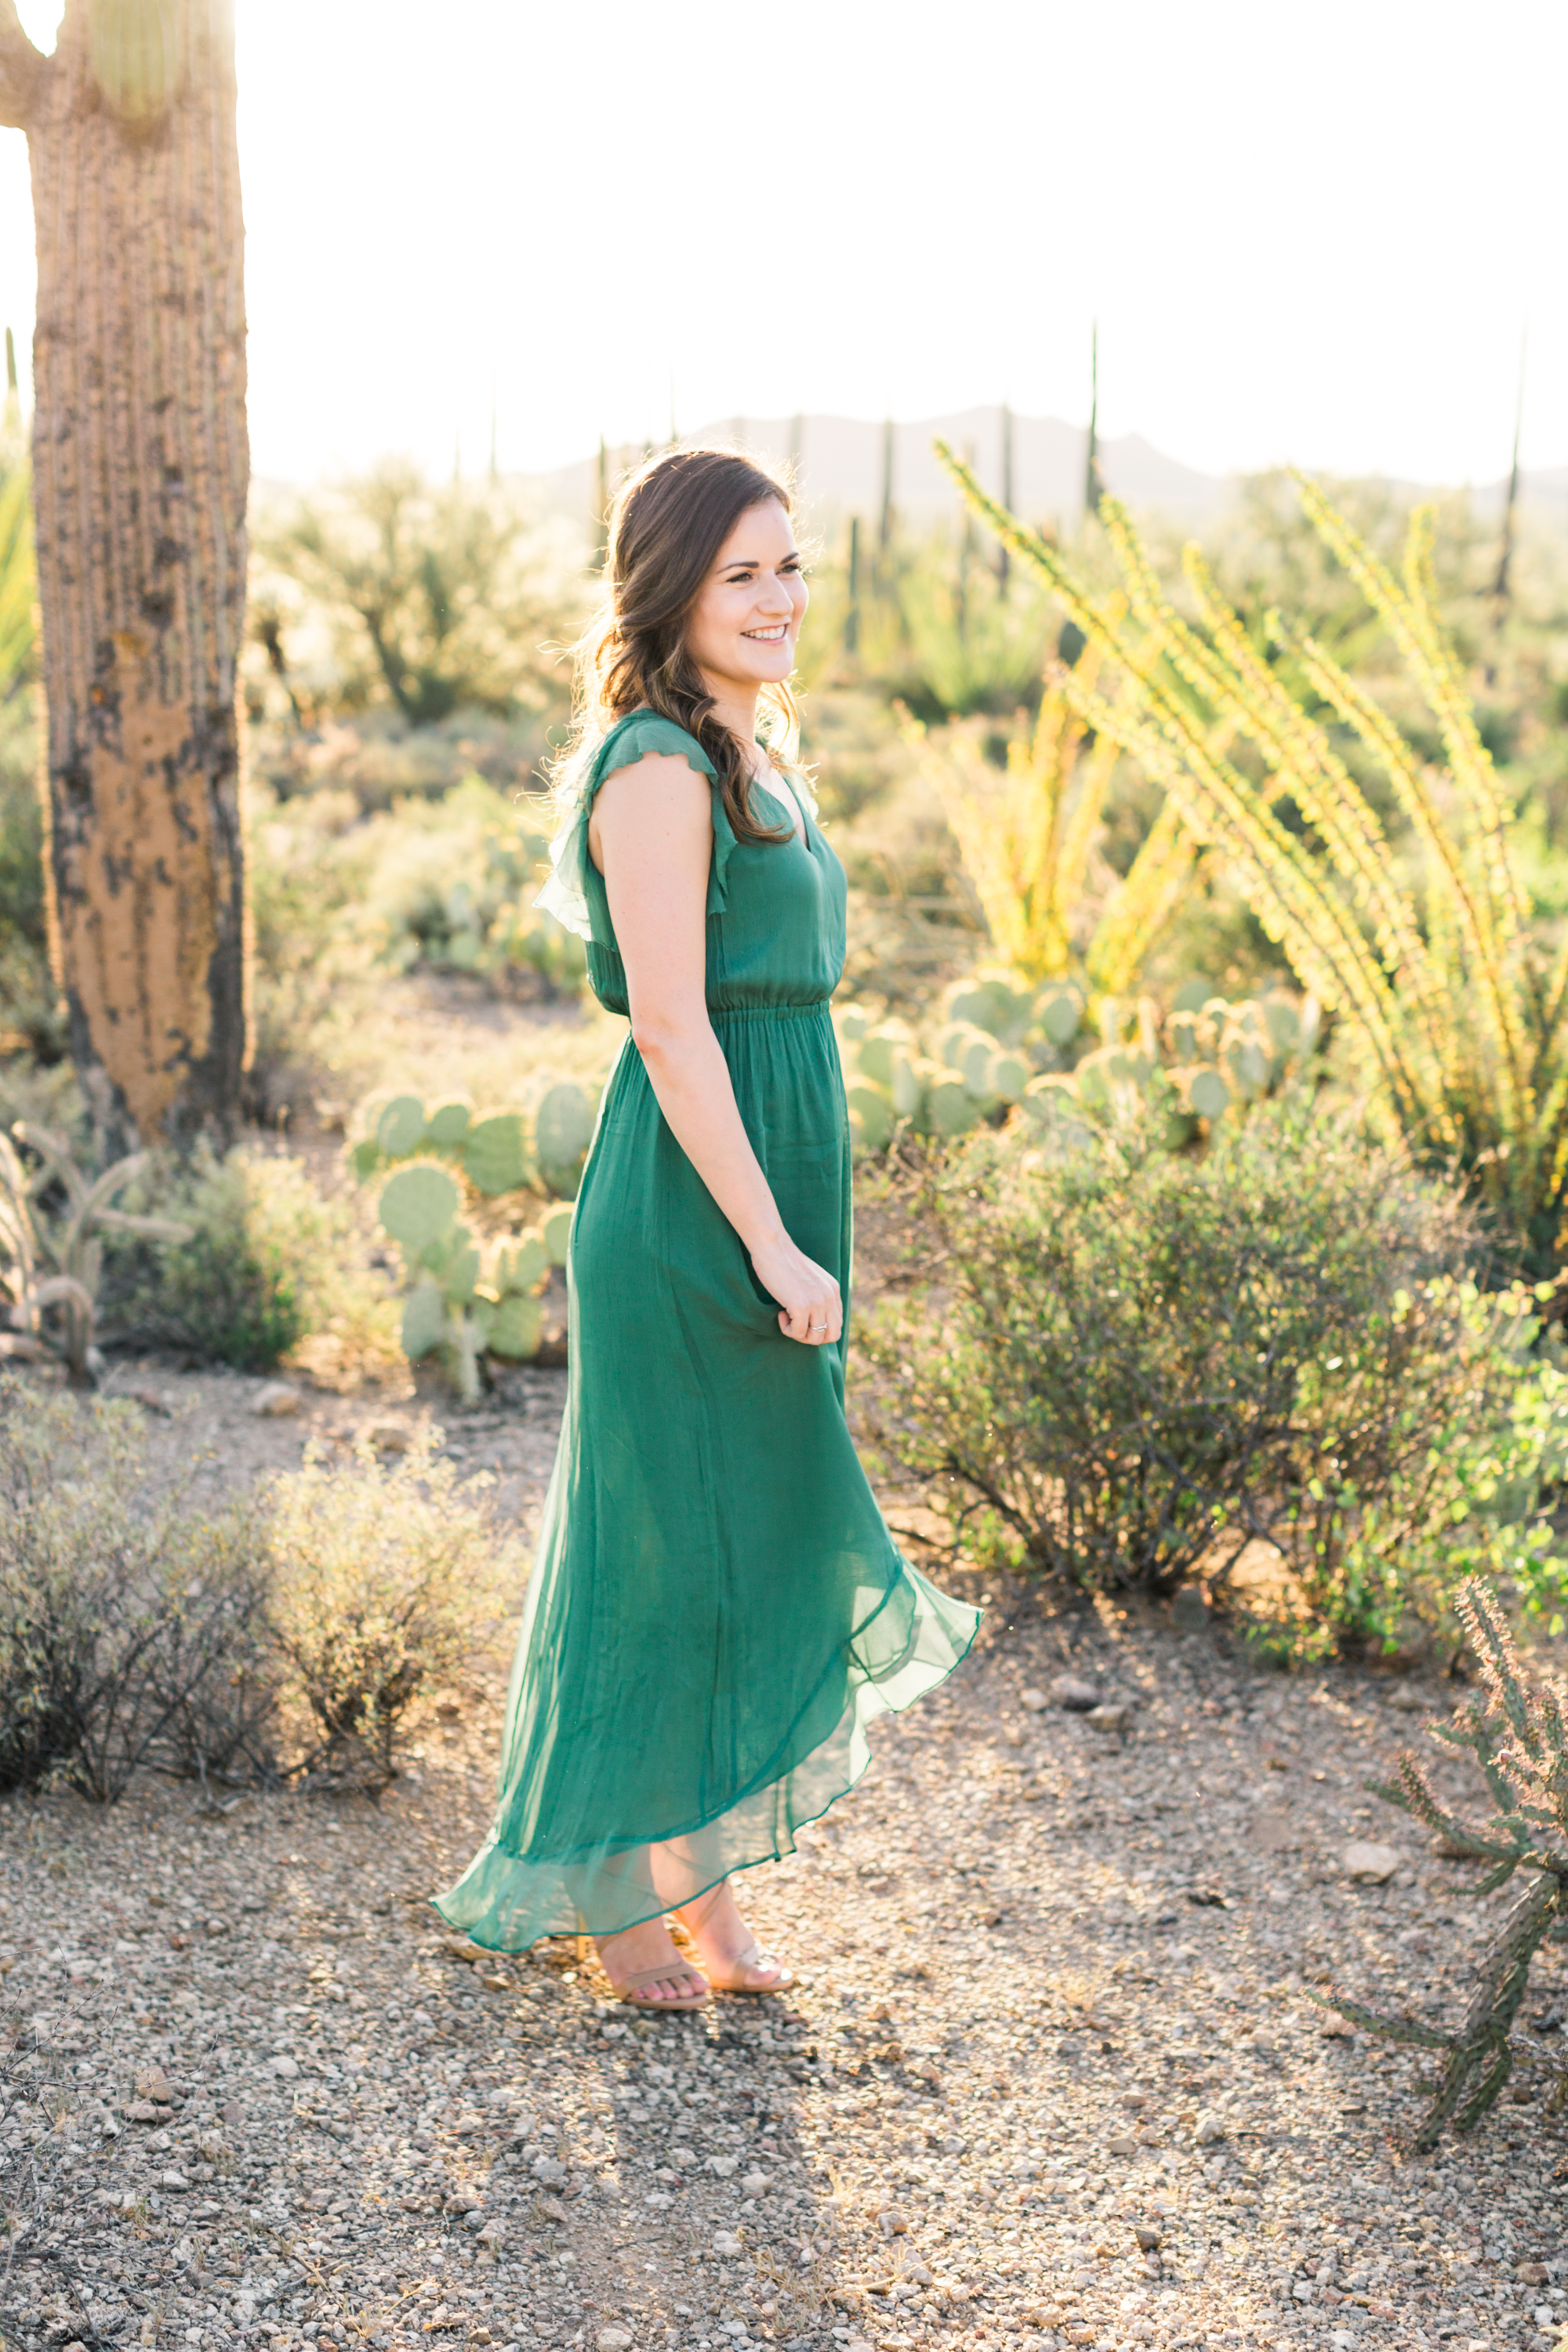 Twirling her beautiful green dress in the desert. Perfect example of what to wear to your engagement session, so elegant.